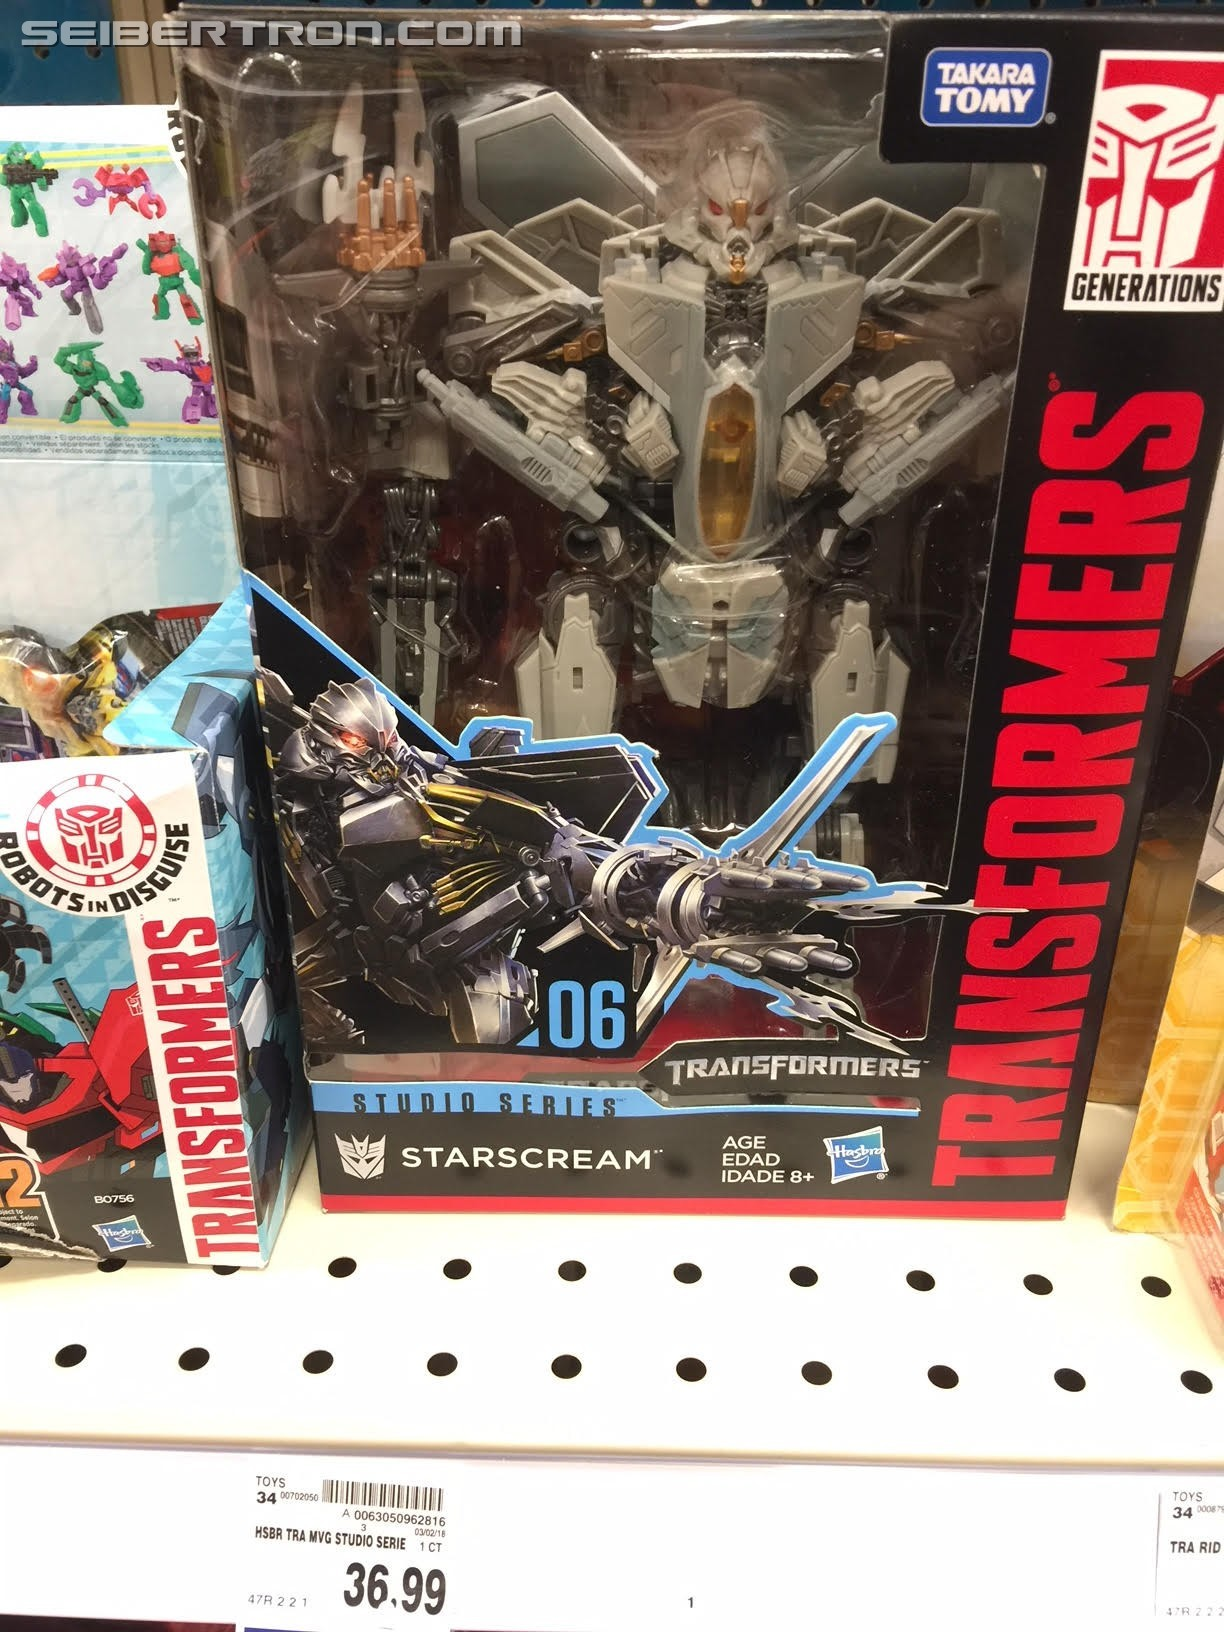 Transformers News: Voyager Optimus Prime and Starscream from Transformers Studio Series Found at US Retail